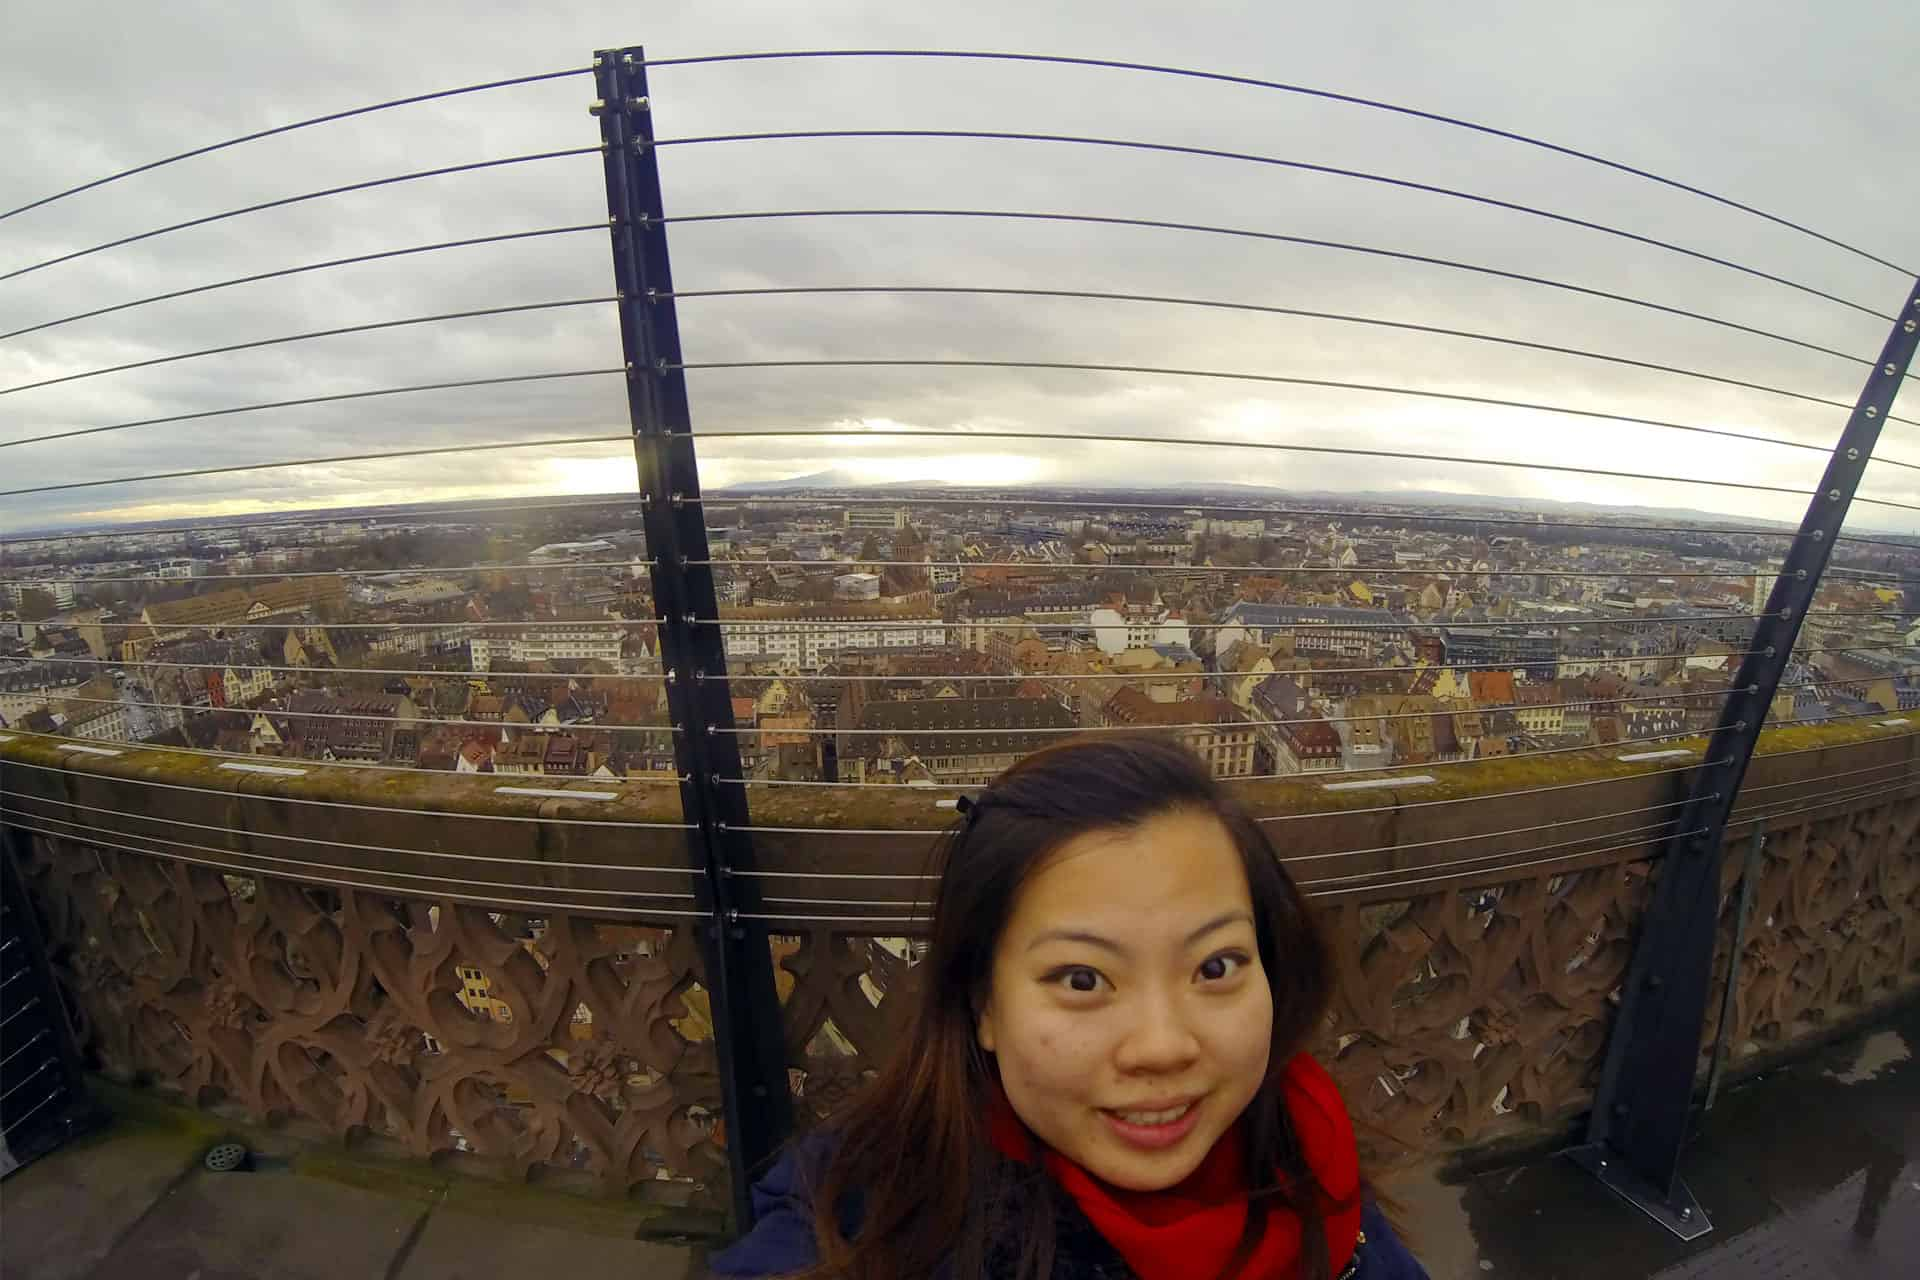 Capturing the amazing city view of Strasbourg